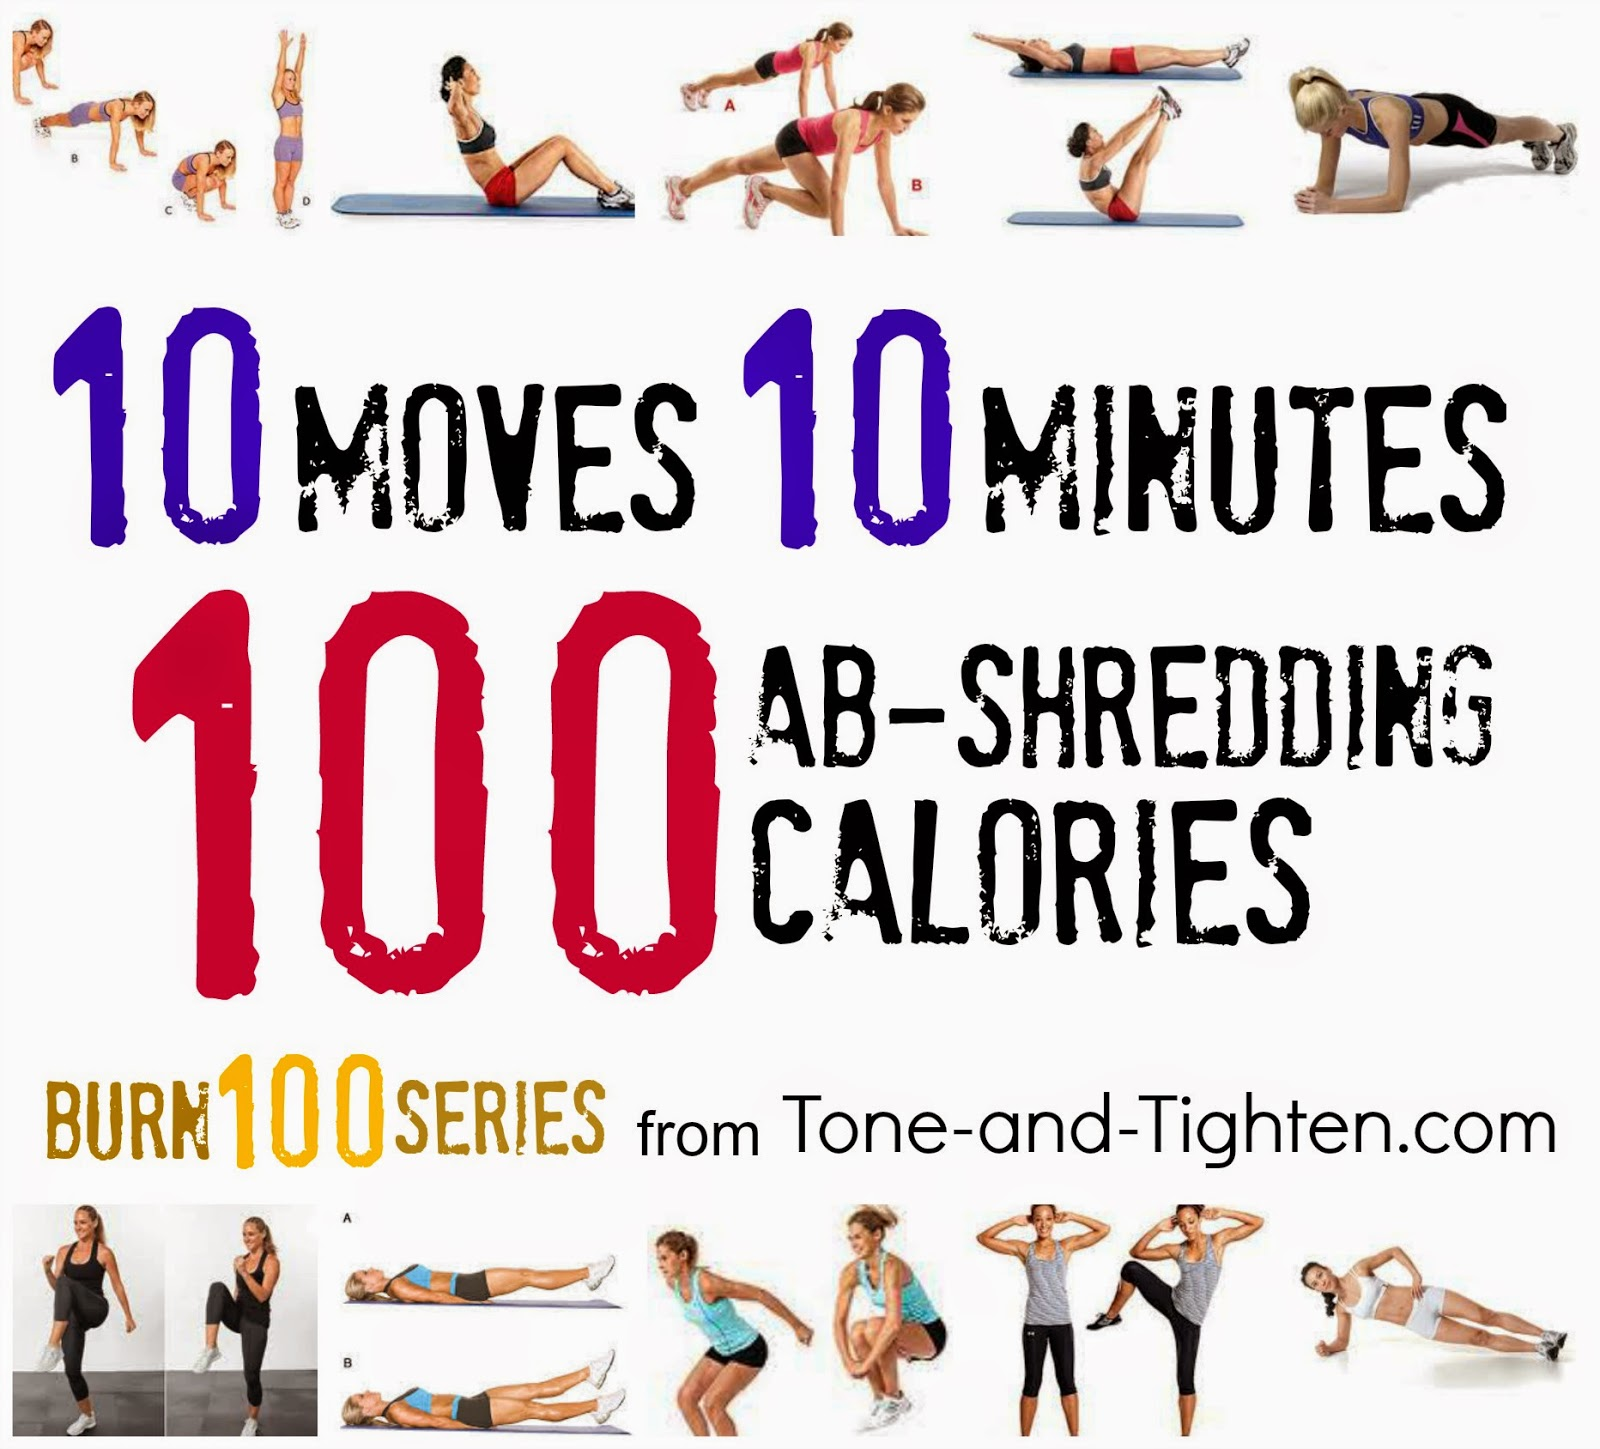 Ab Workouts: 5 Great At-home Workouts